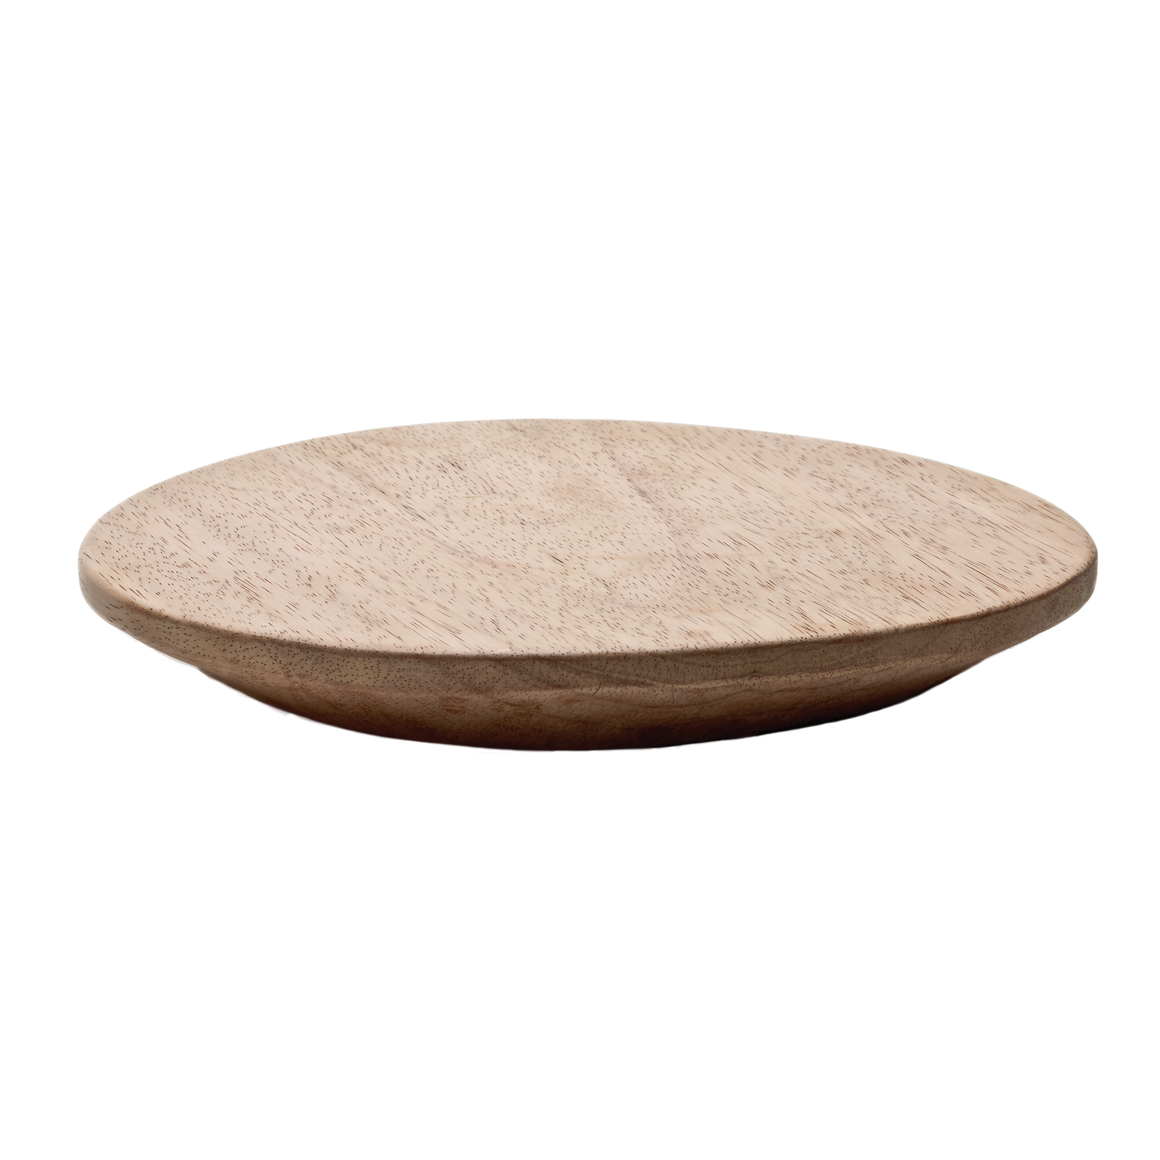 Tornillo Wood Cheese Board